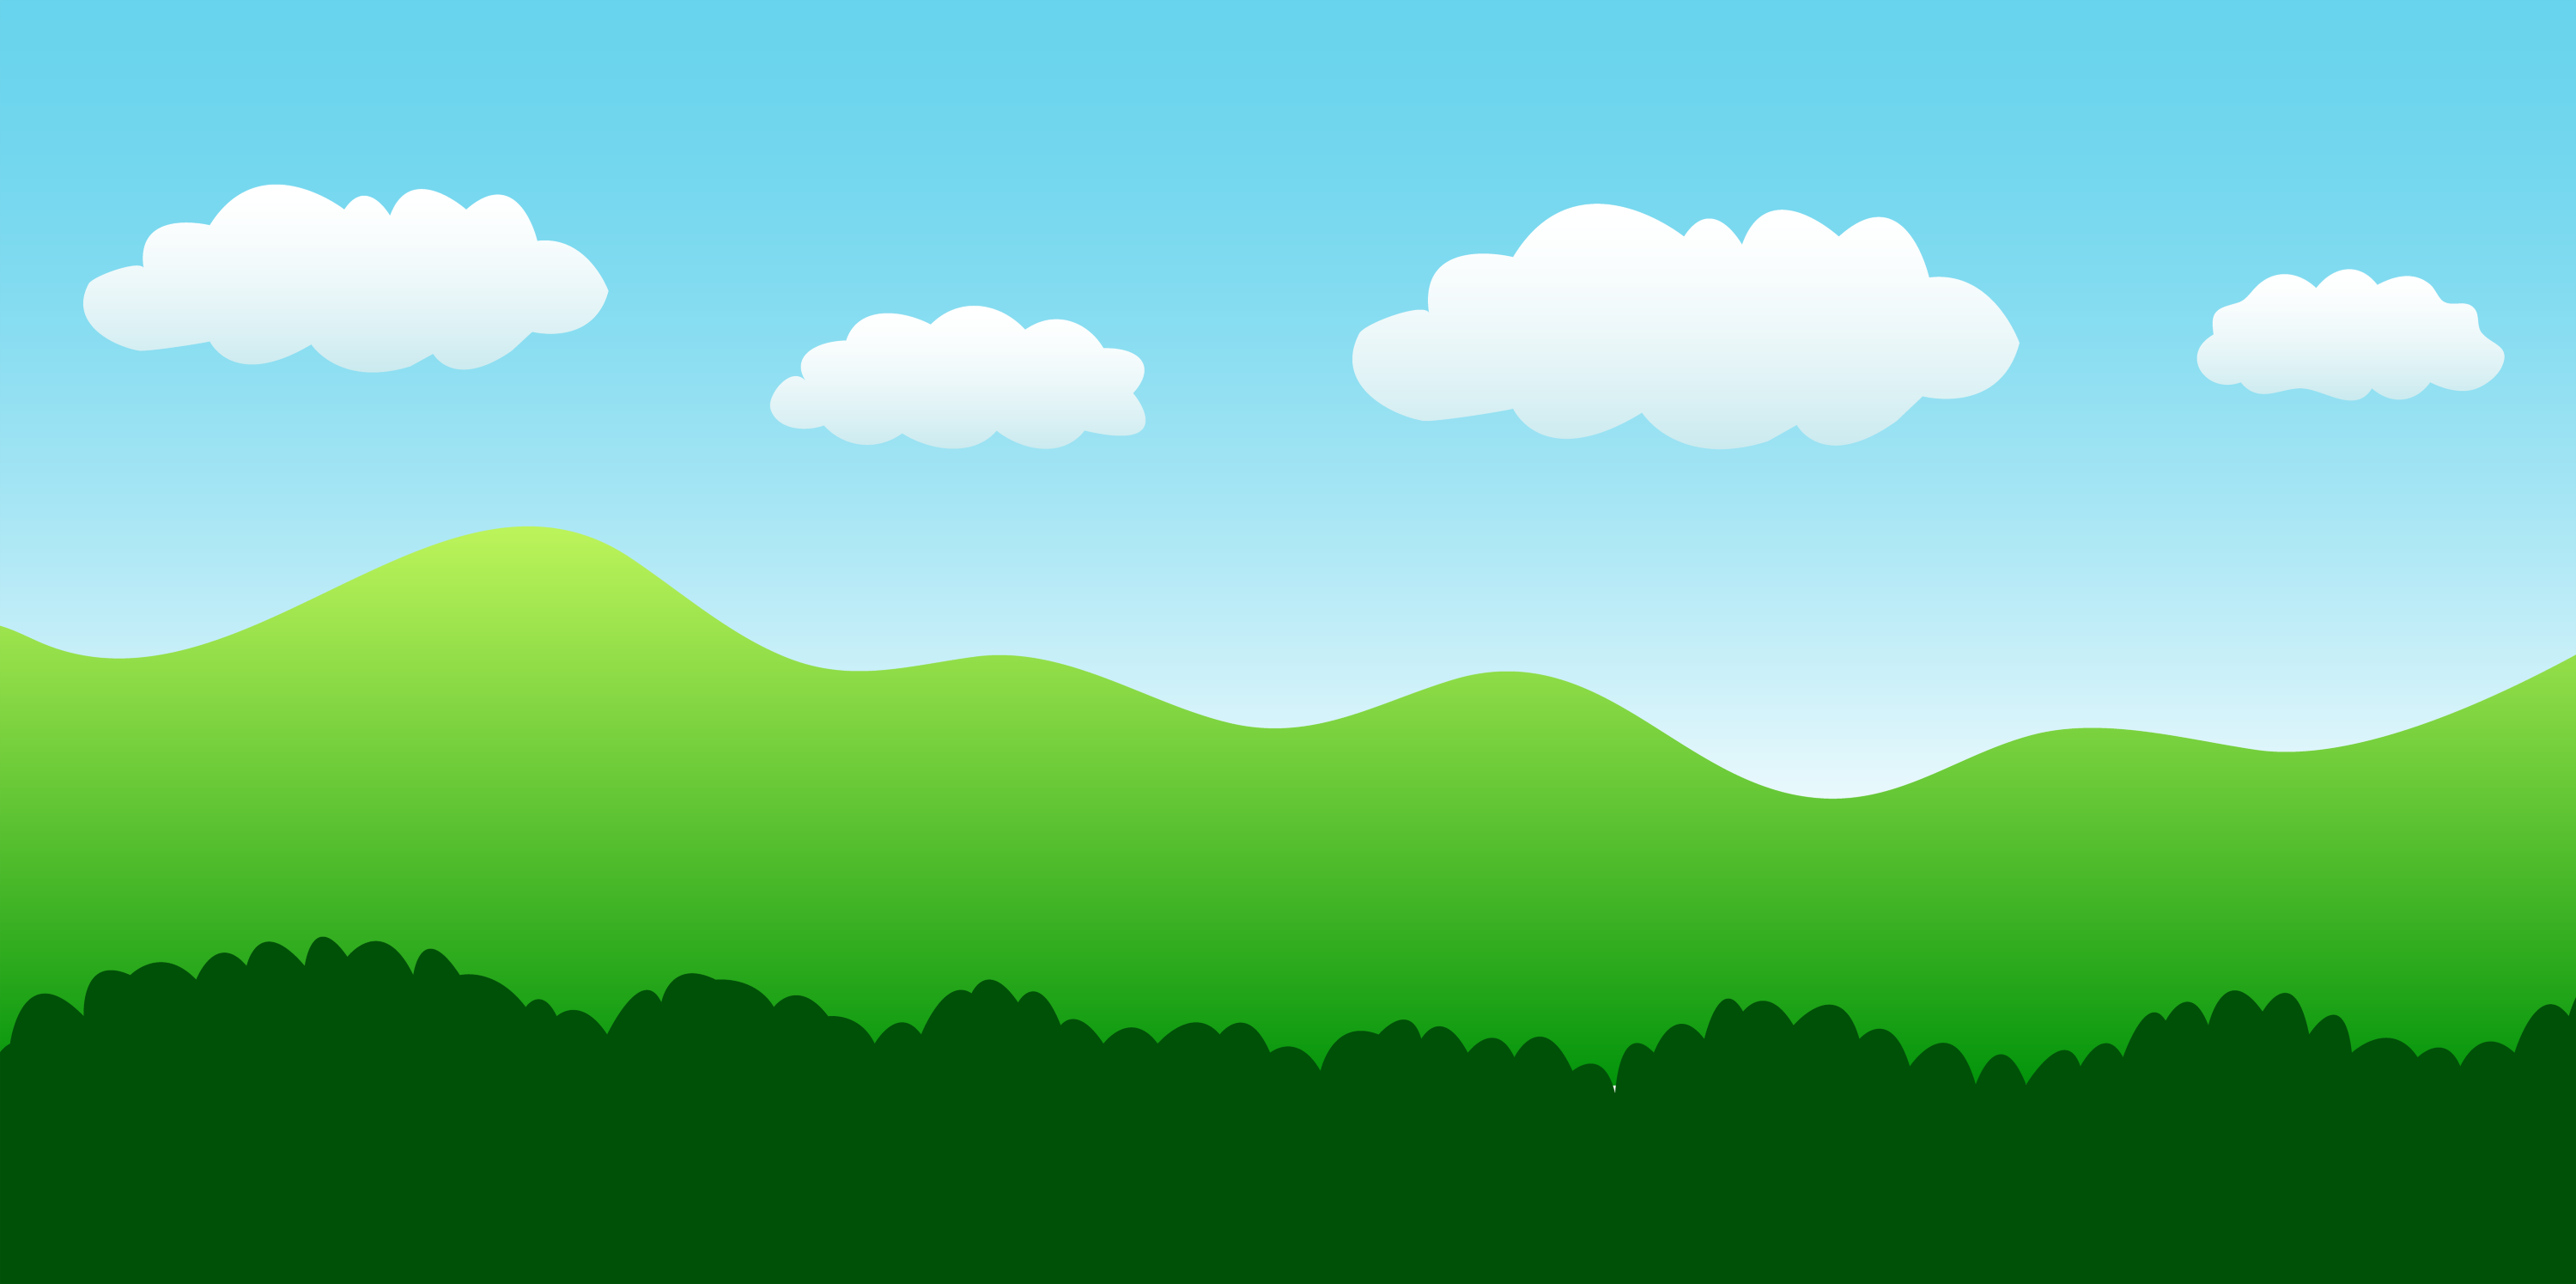 Landscape Scene With Hills Bushes and Sky - Free Clip Art